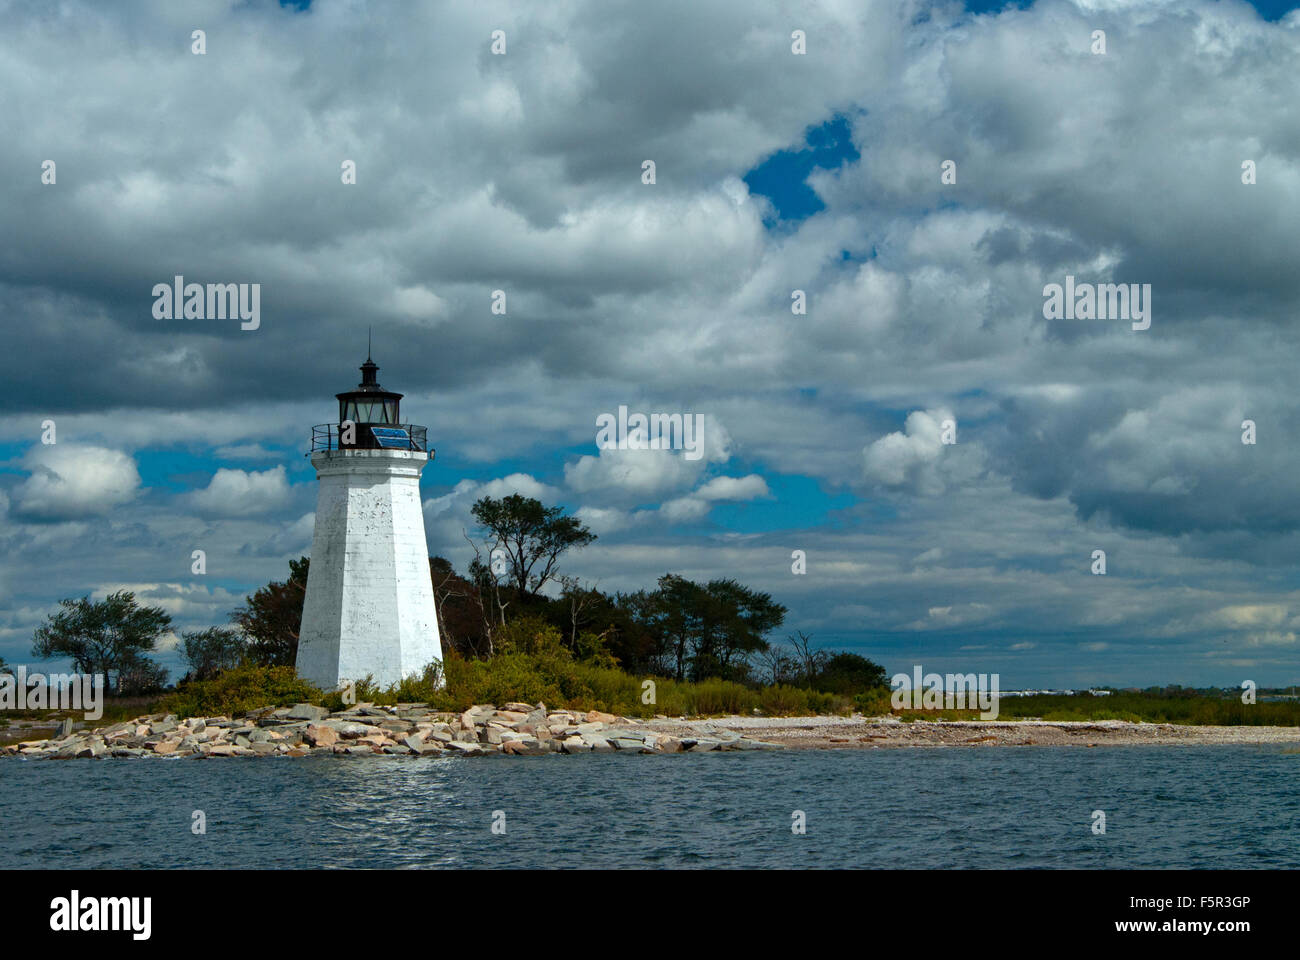 Sun breaks through clouds to illuminate Black Rock Harbor lighthouse tower in Bridgewater, Connecticut. It is also Stock Photo